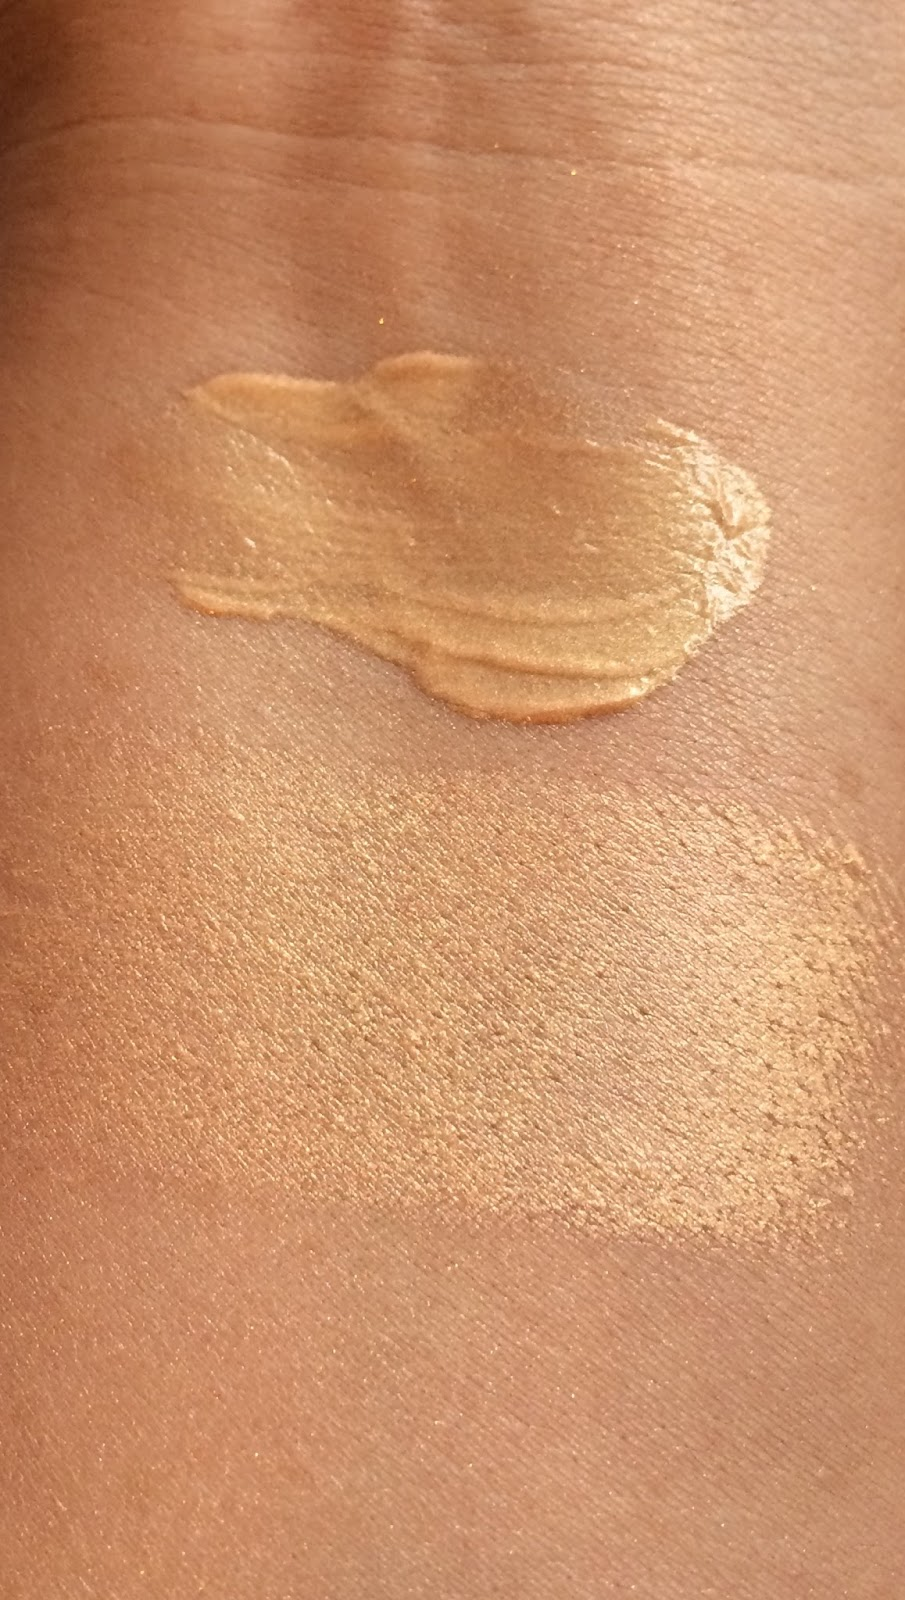 Kevyn Aucoin Celestial Skin Liquid Highlighter, Natasha Denona Cream Glow Highlighter swatches